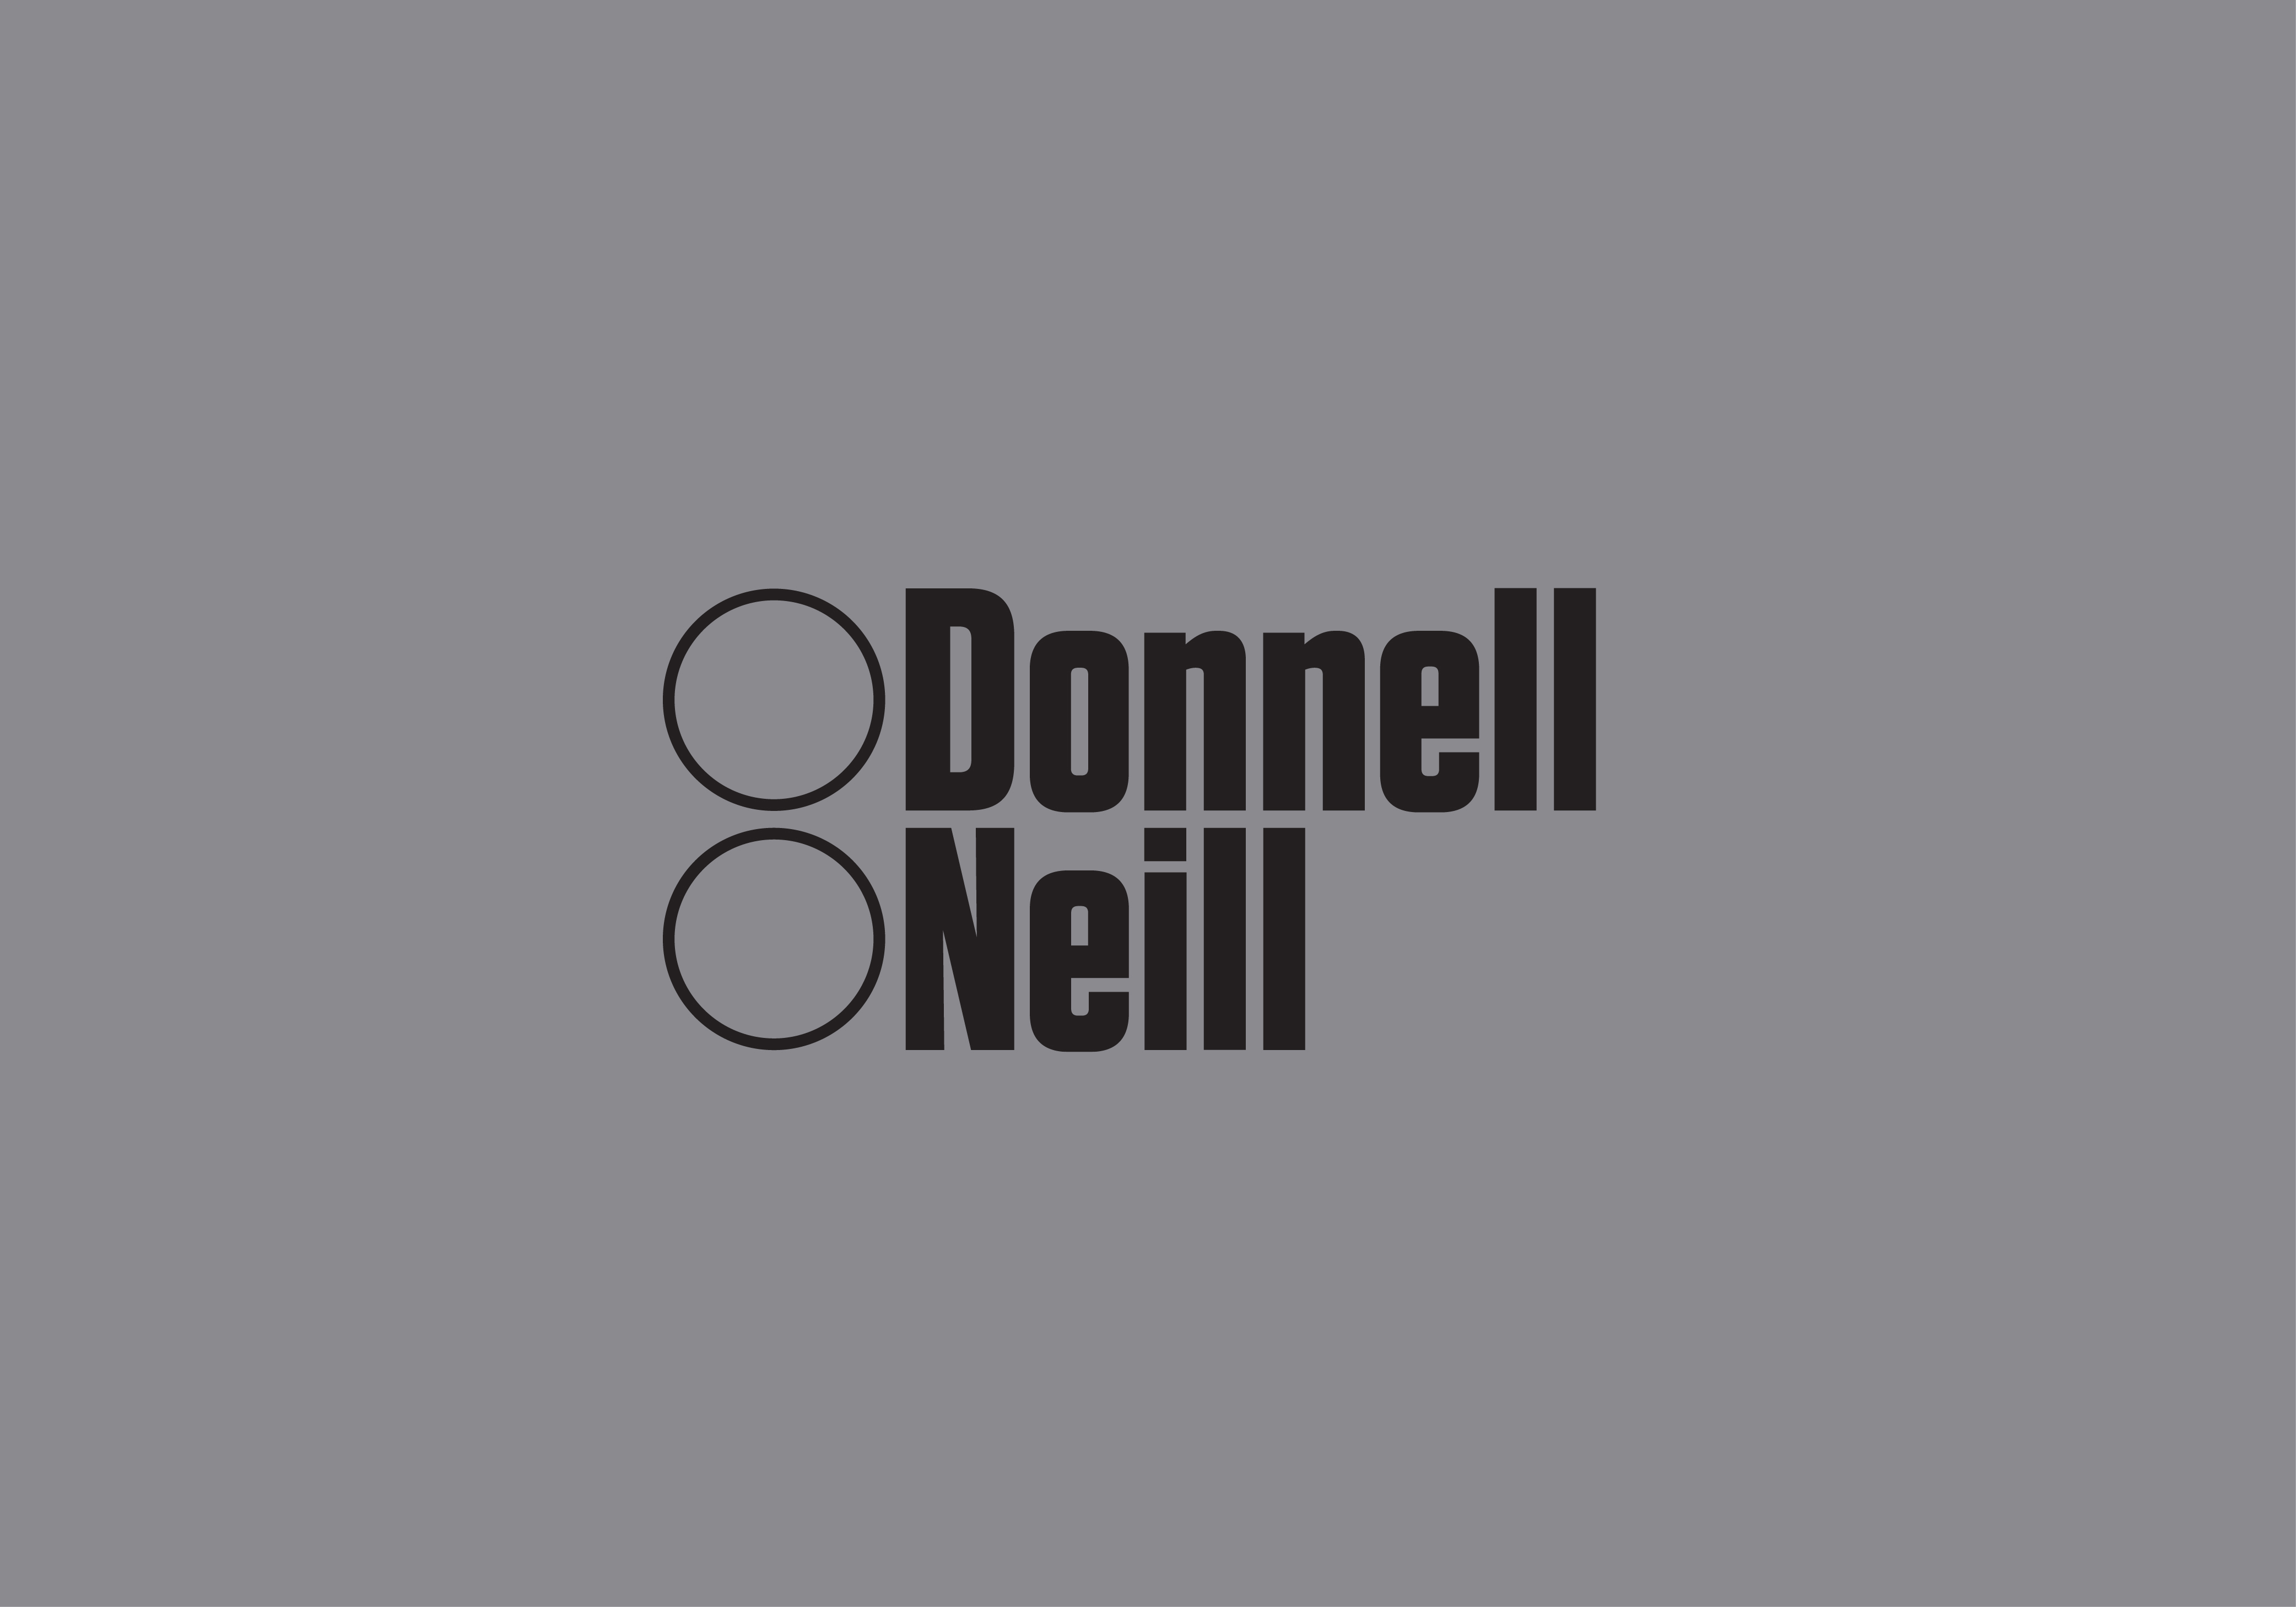 Cover image: O'Donnell O'Neill Rebrand